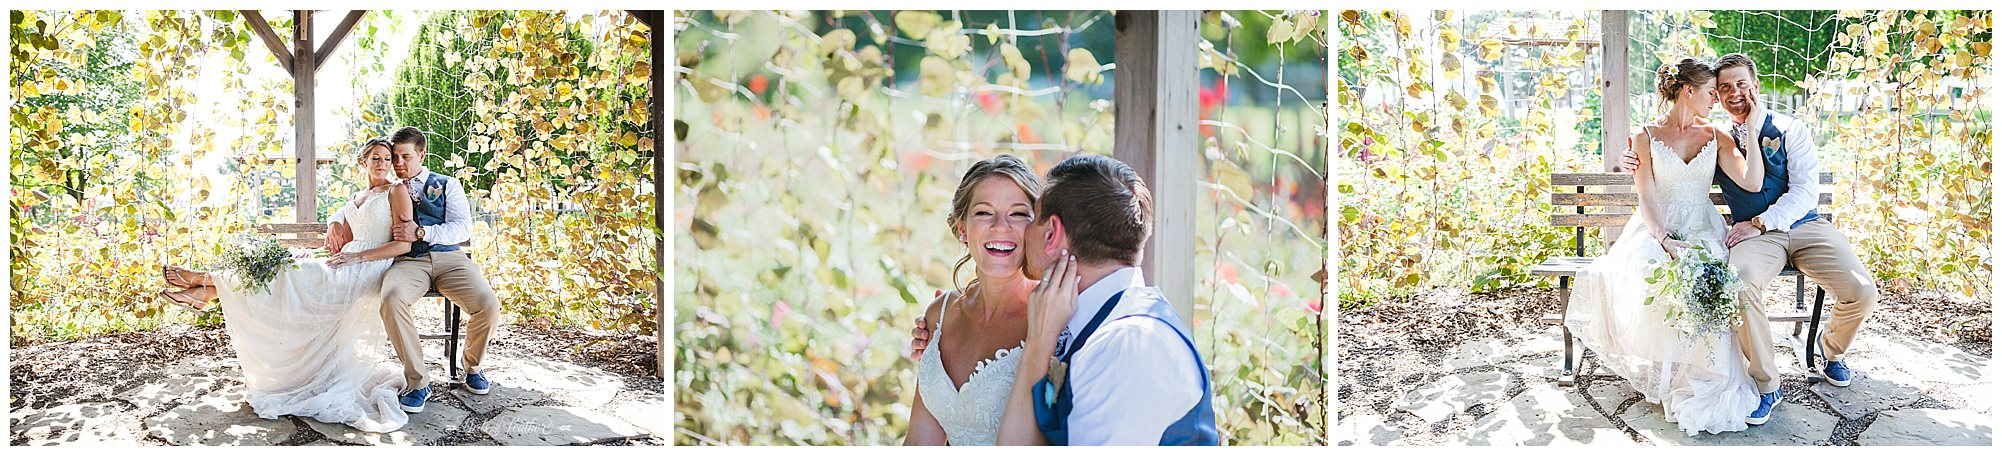 Birds of a Feather Photography Rodale Institute Kutztown Pa Wedding Photographer 17